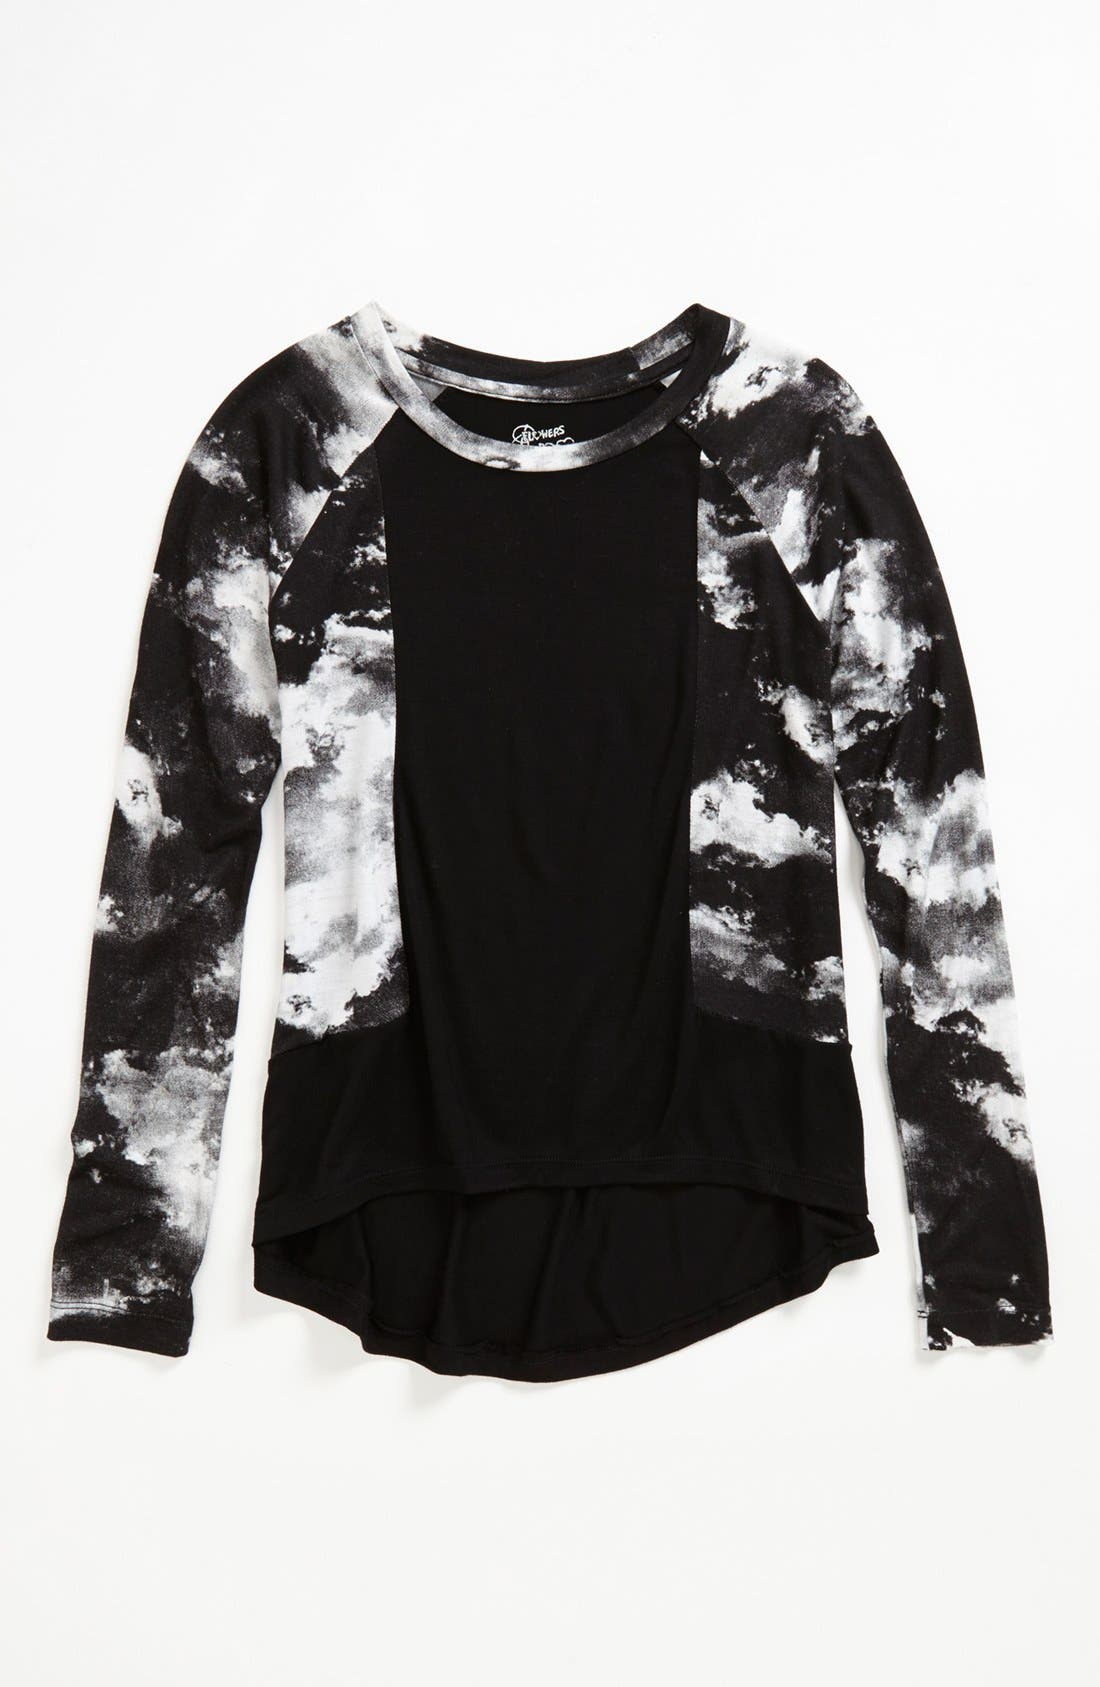 Main Image - Flowers by Zoe Tie Dye High/Low Tunic Top (Big Girls) (Online Only)